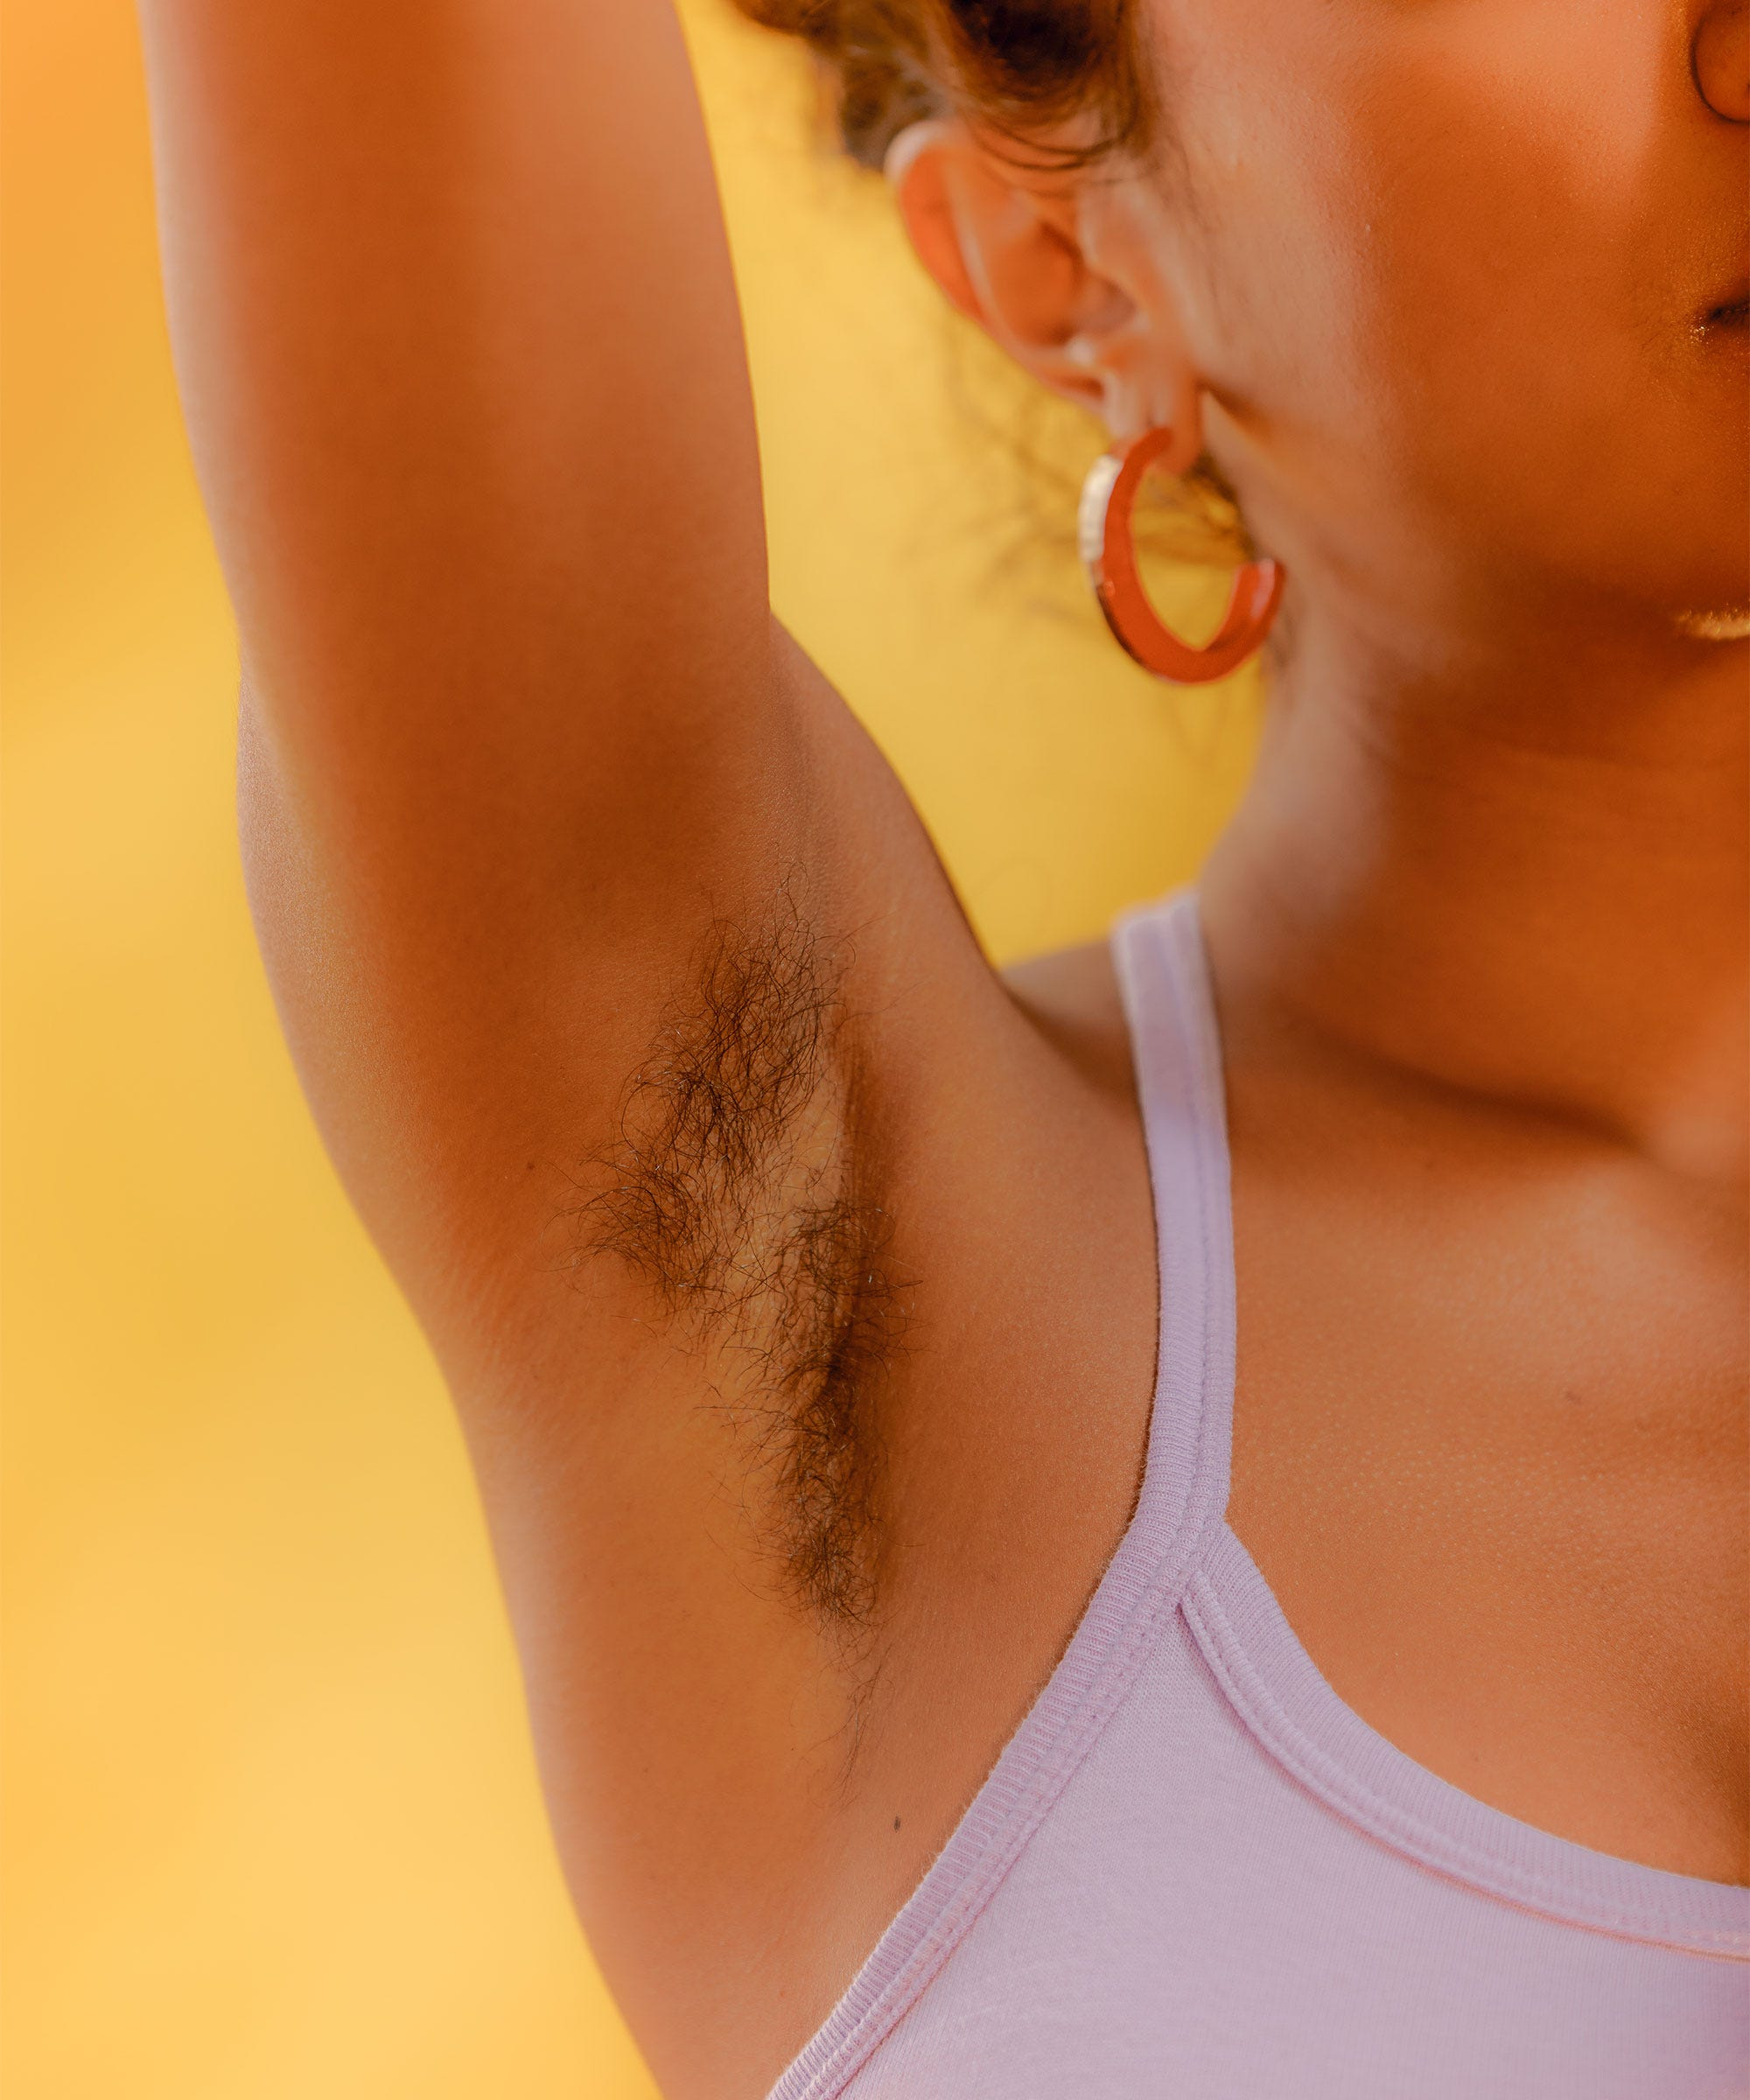 Want Brighter Underarms? Read This Before You DIY